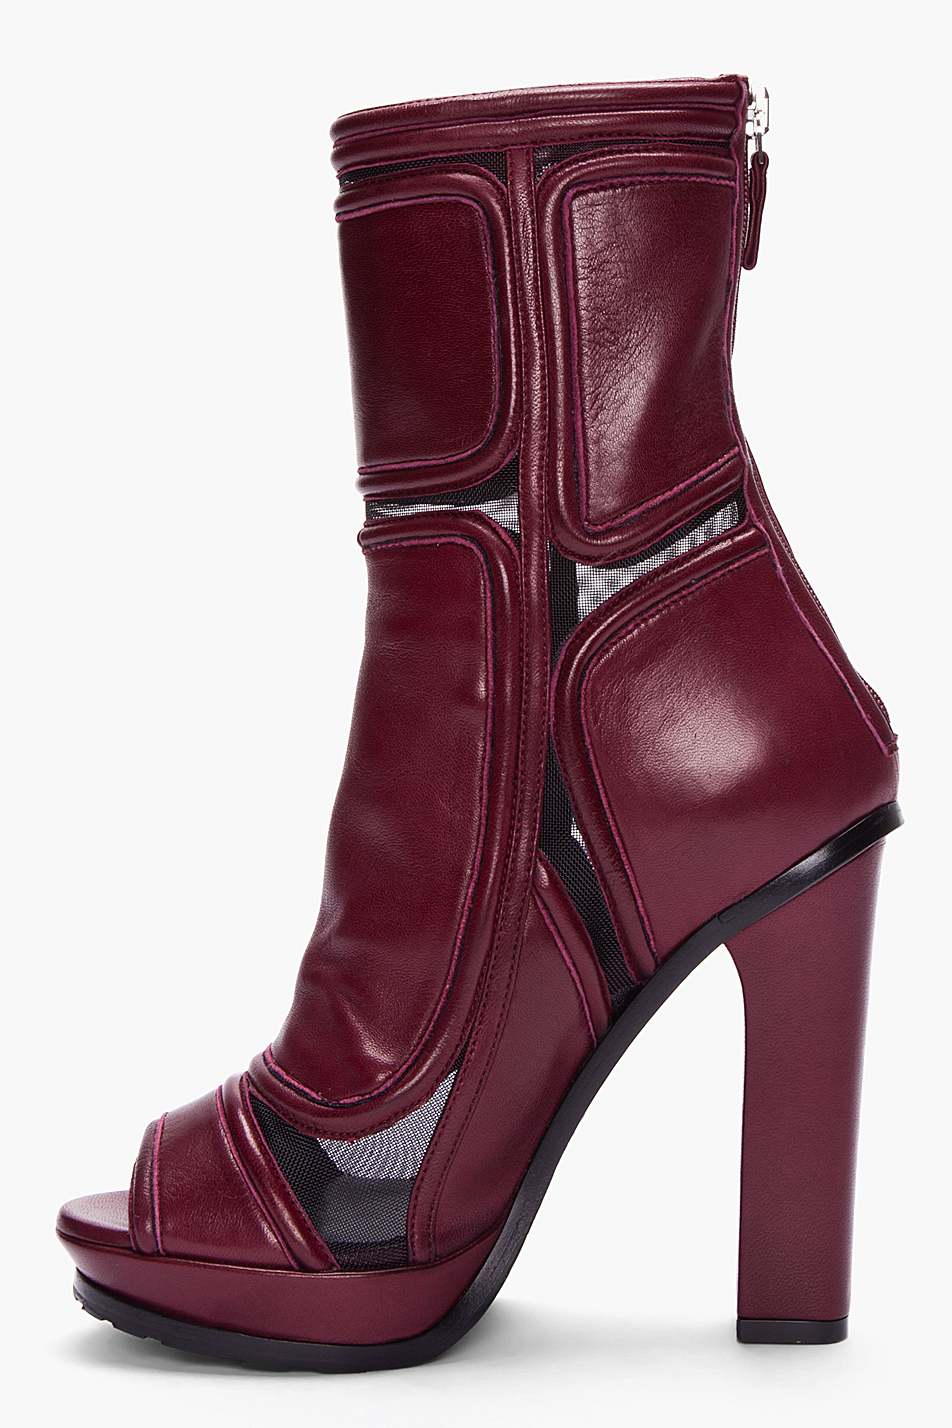 Versus Burgundy Paneled Leather Ankle Boots Lyst